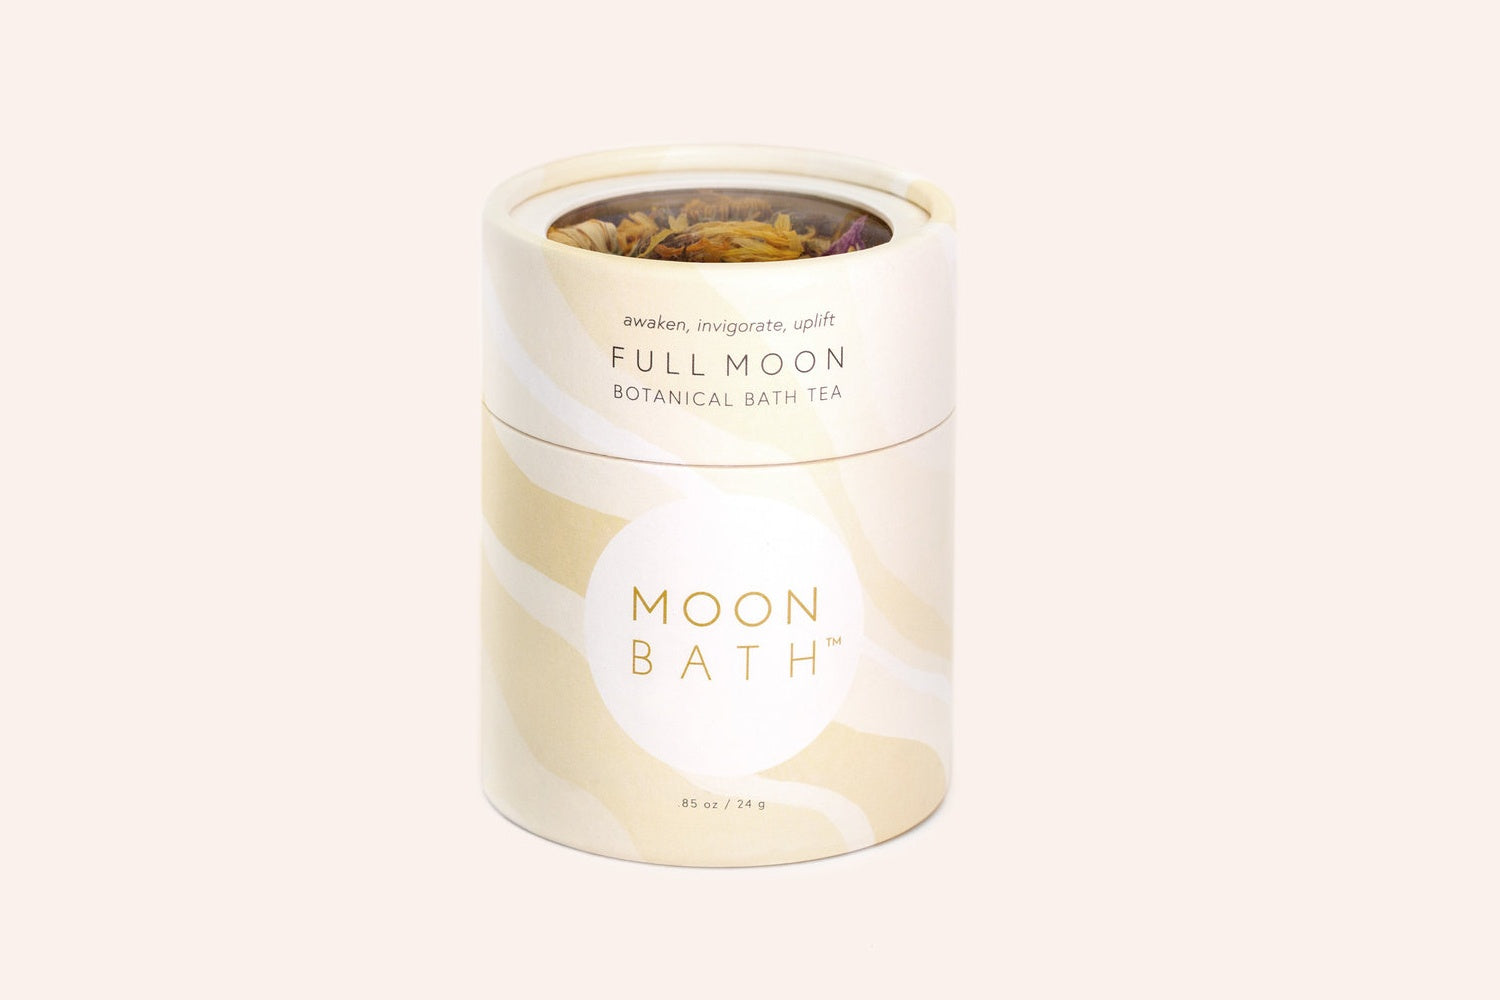 Full Moon Bath Tea by Moon Bath